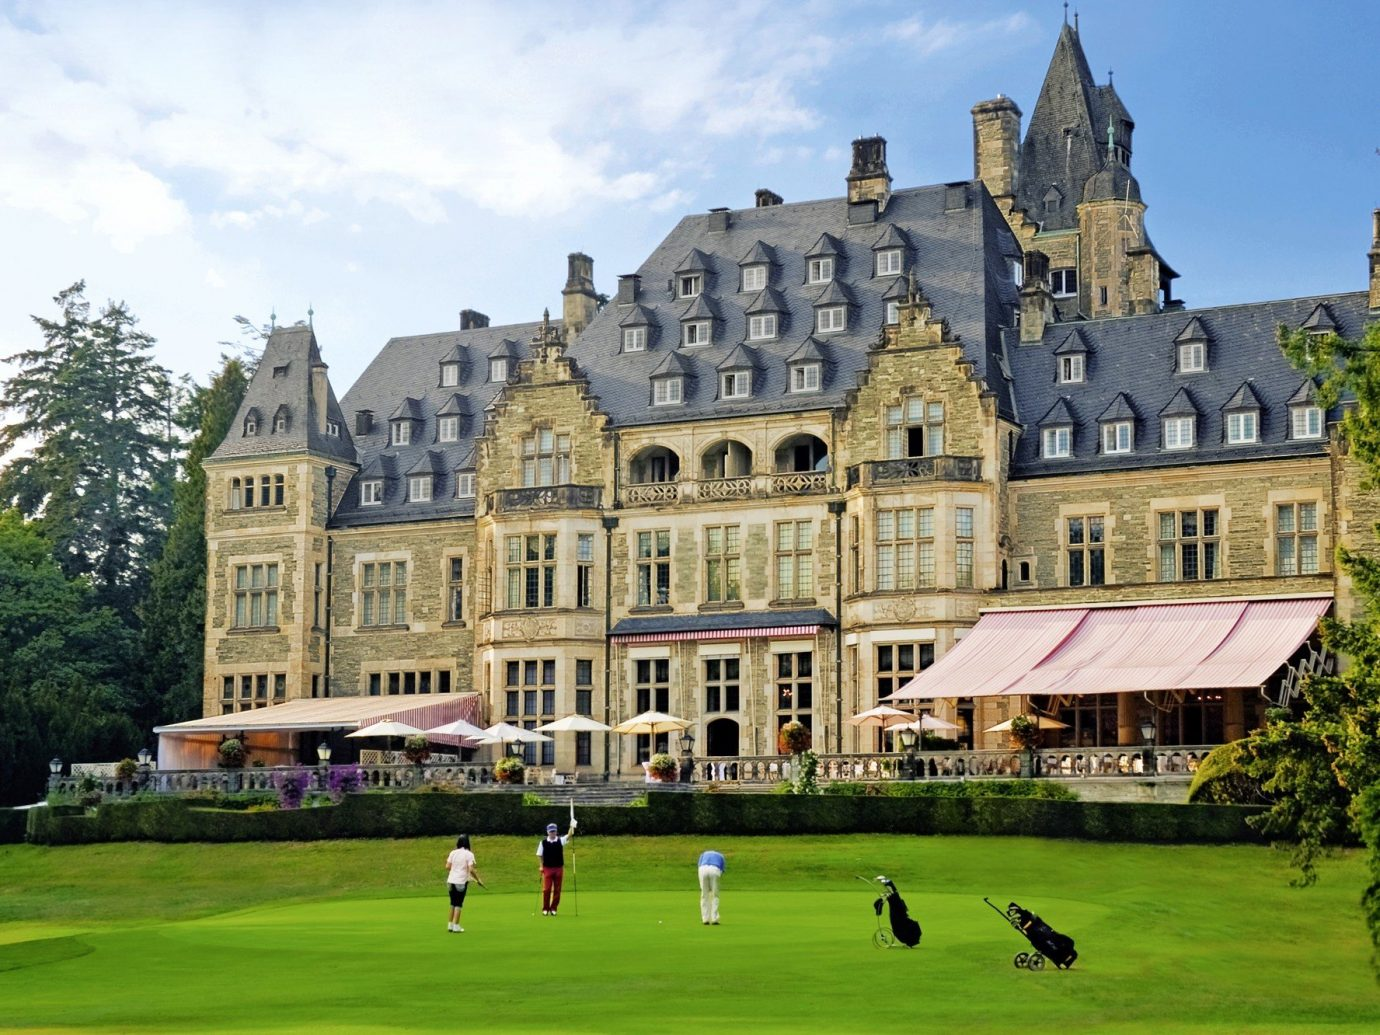 Hotels Landmarks Luxury Travel tree grass outdoor sky stately home building château estate field park mansion castle manor house lawn residential area palace